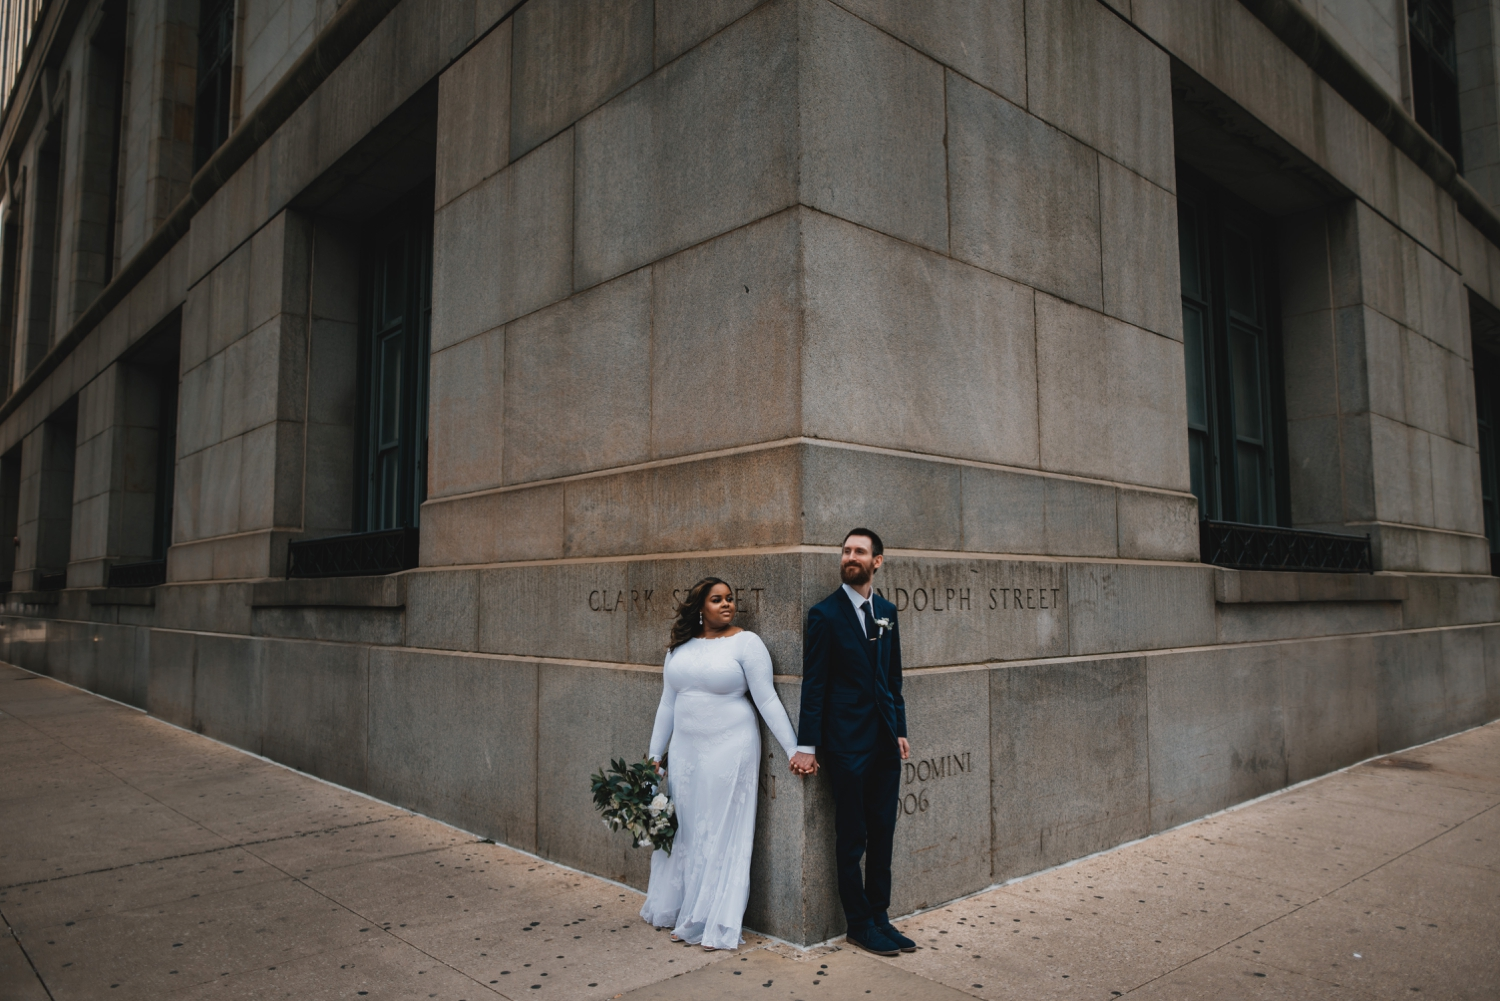 Chicago Elopement photographer - The Adamkovi, bride and groom in the city, photo on a corner